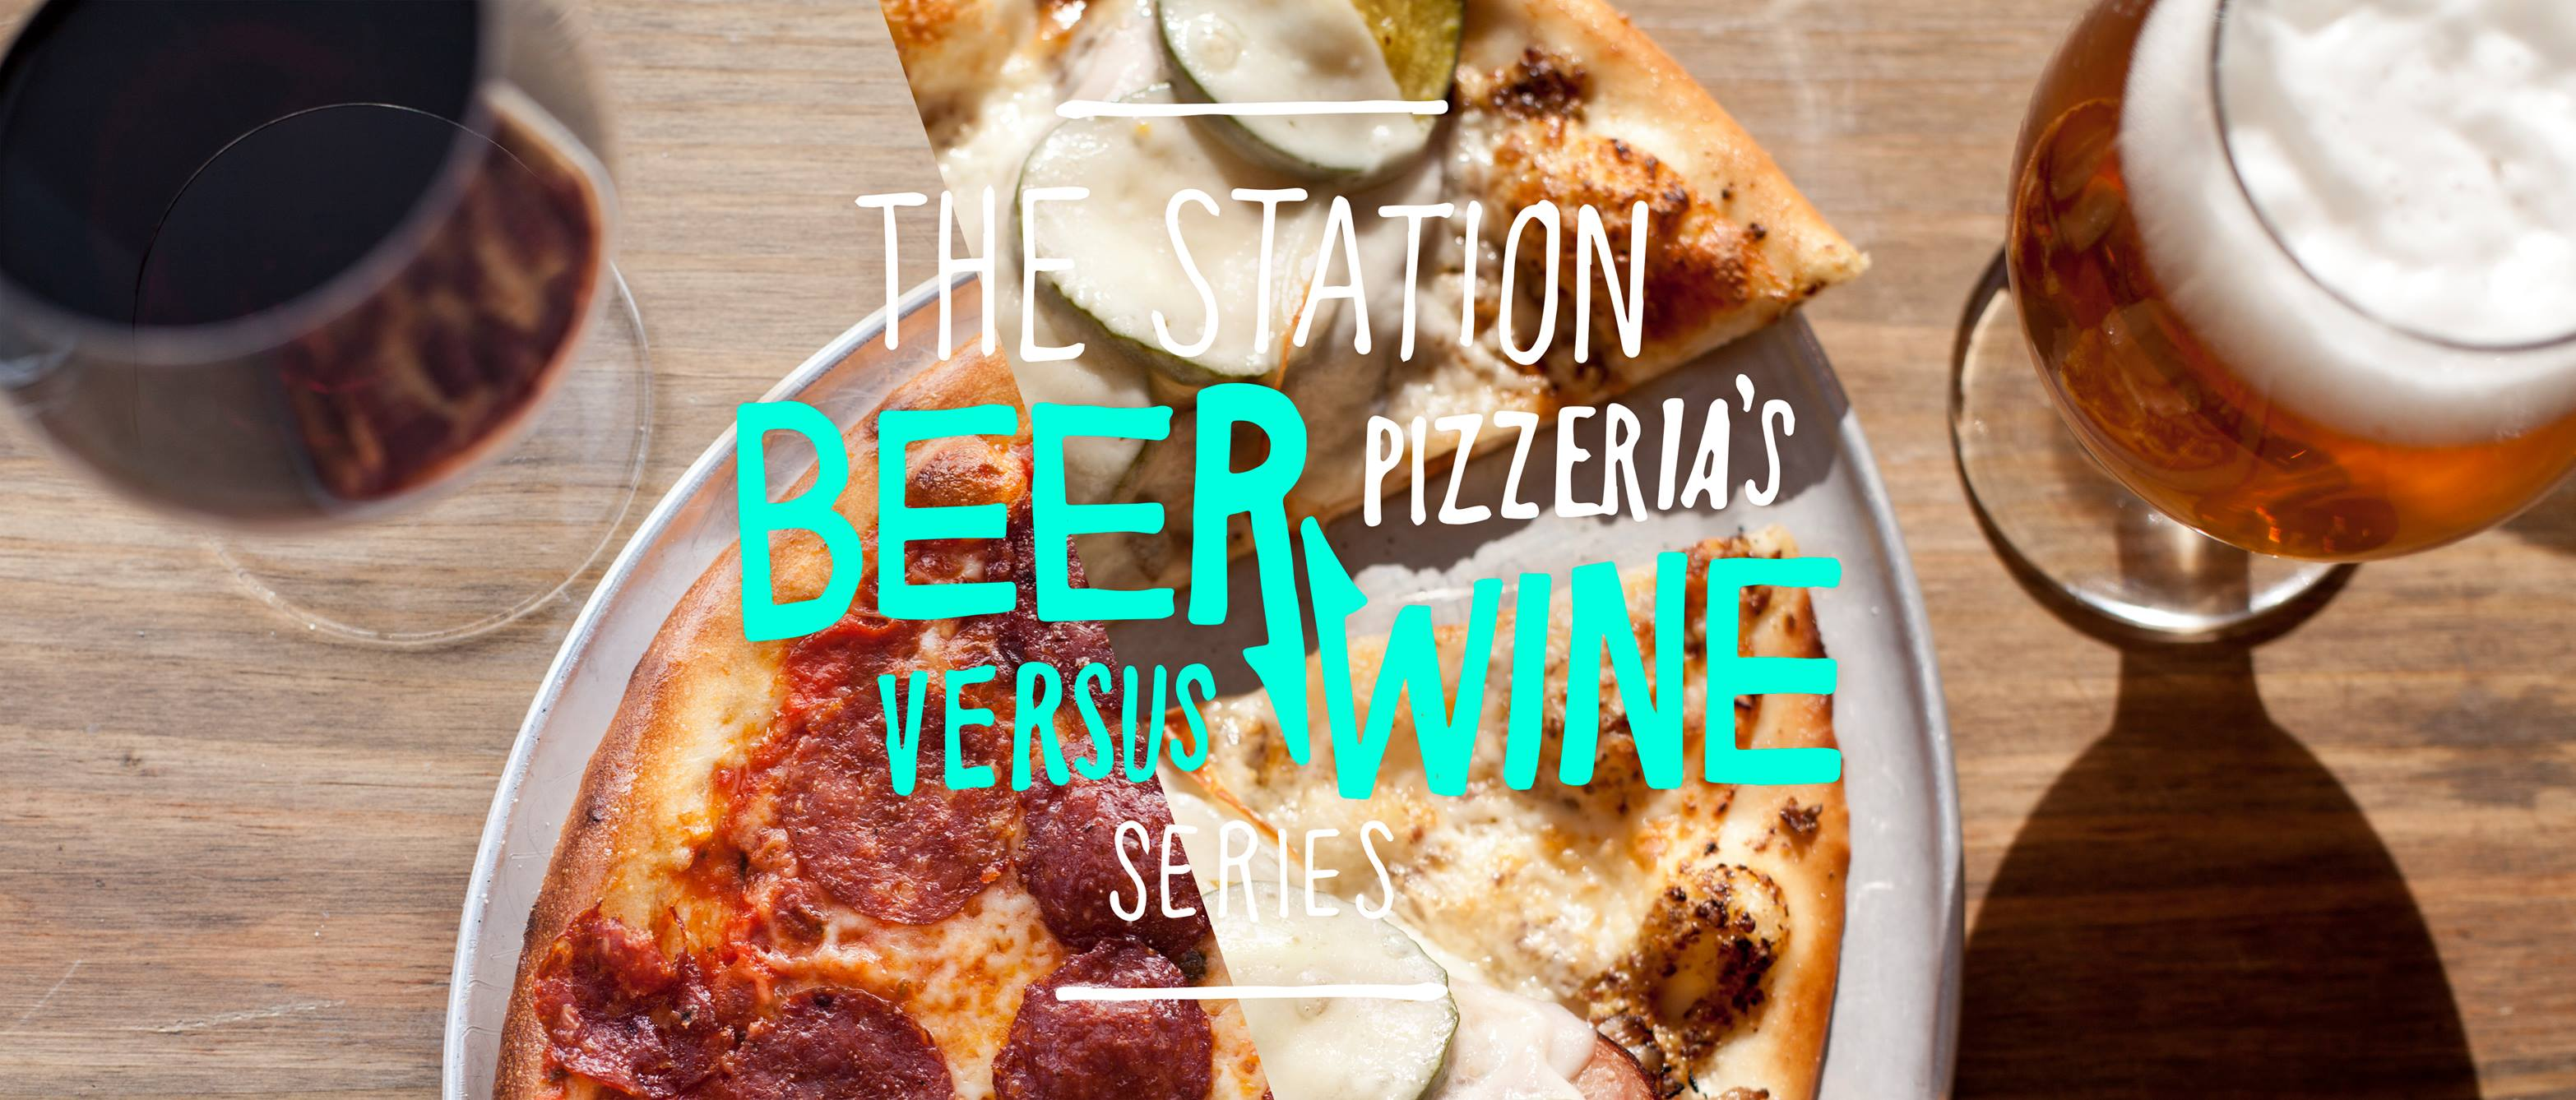 station_pizzeria_beer-v-wine